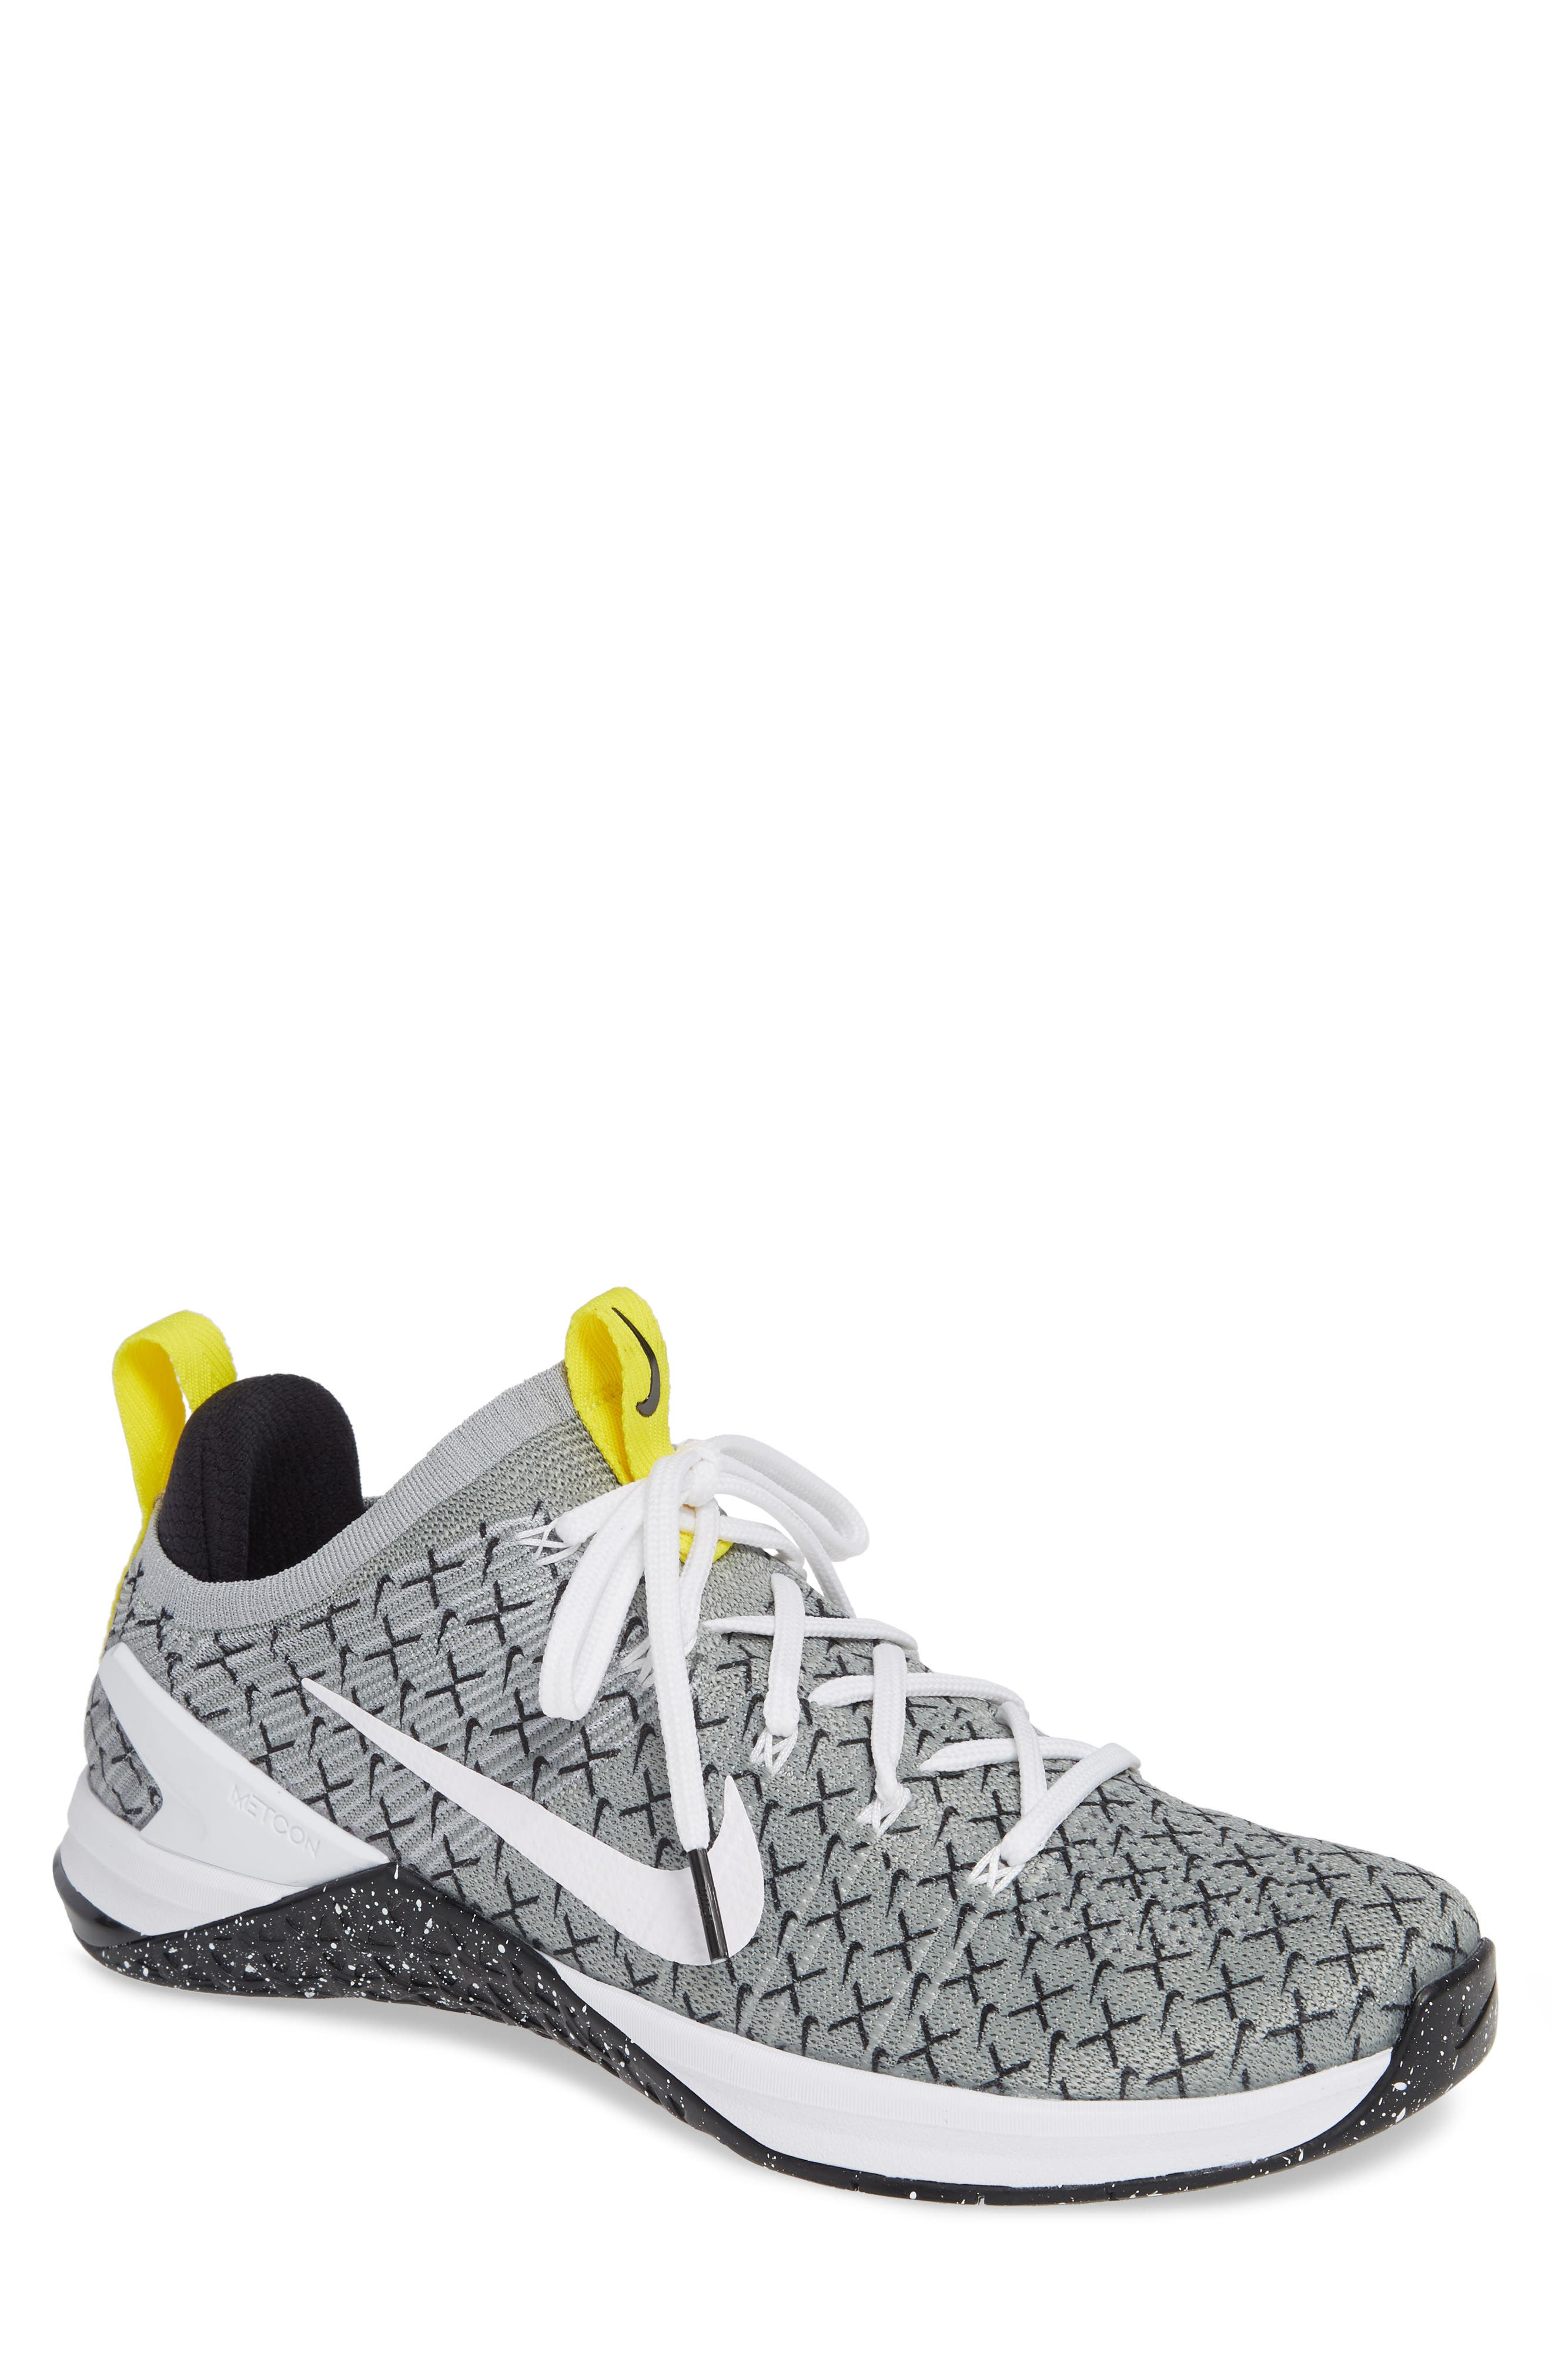 Metcon DSX Flyknit 2 Training Shoe,                         Main,                         color, Black/ White/ Yellow